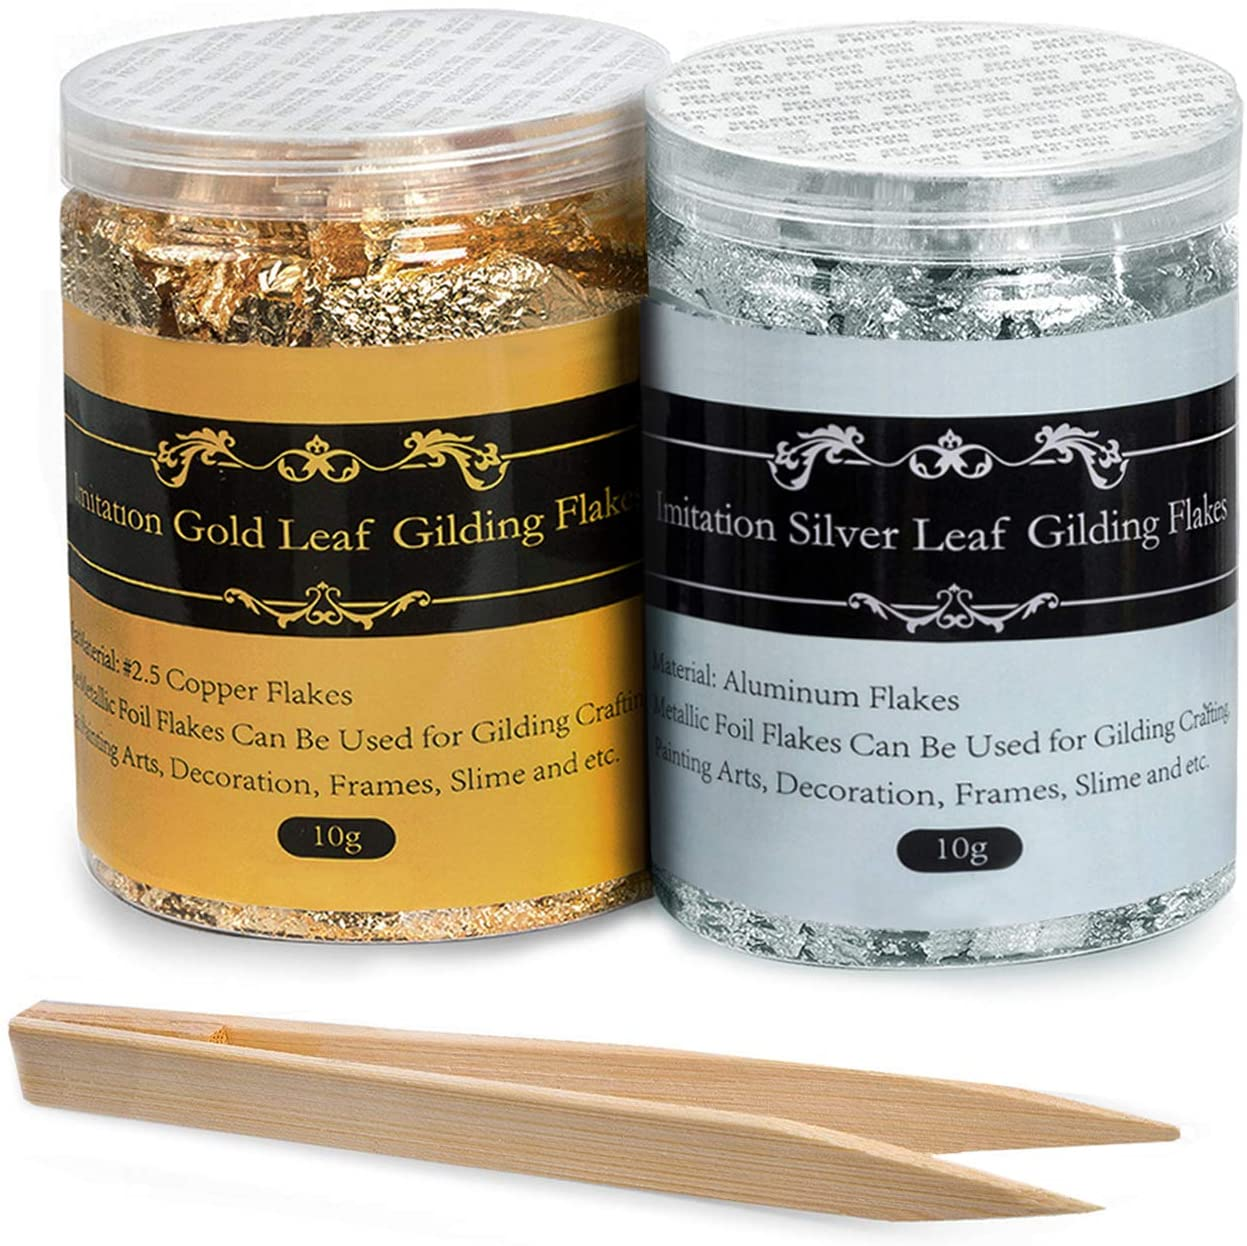 Gilding Flakes - Color 2.5 Imitation Gold Flakes and Silver Flakes, 2 Bottles Metallic Foil Flakes for Painting Arts and Crafts,Nail Art